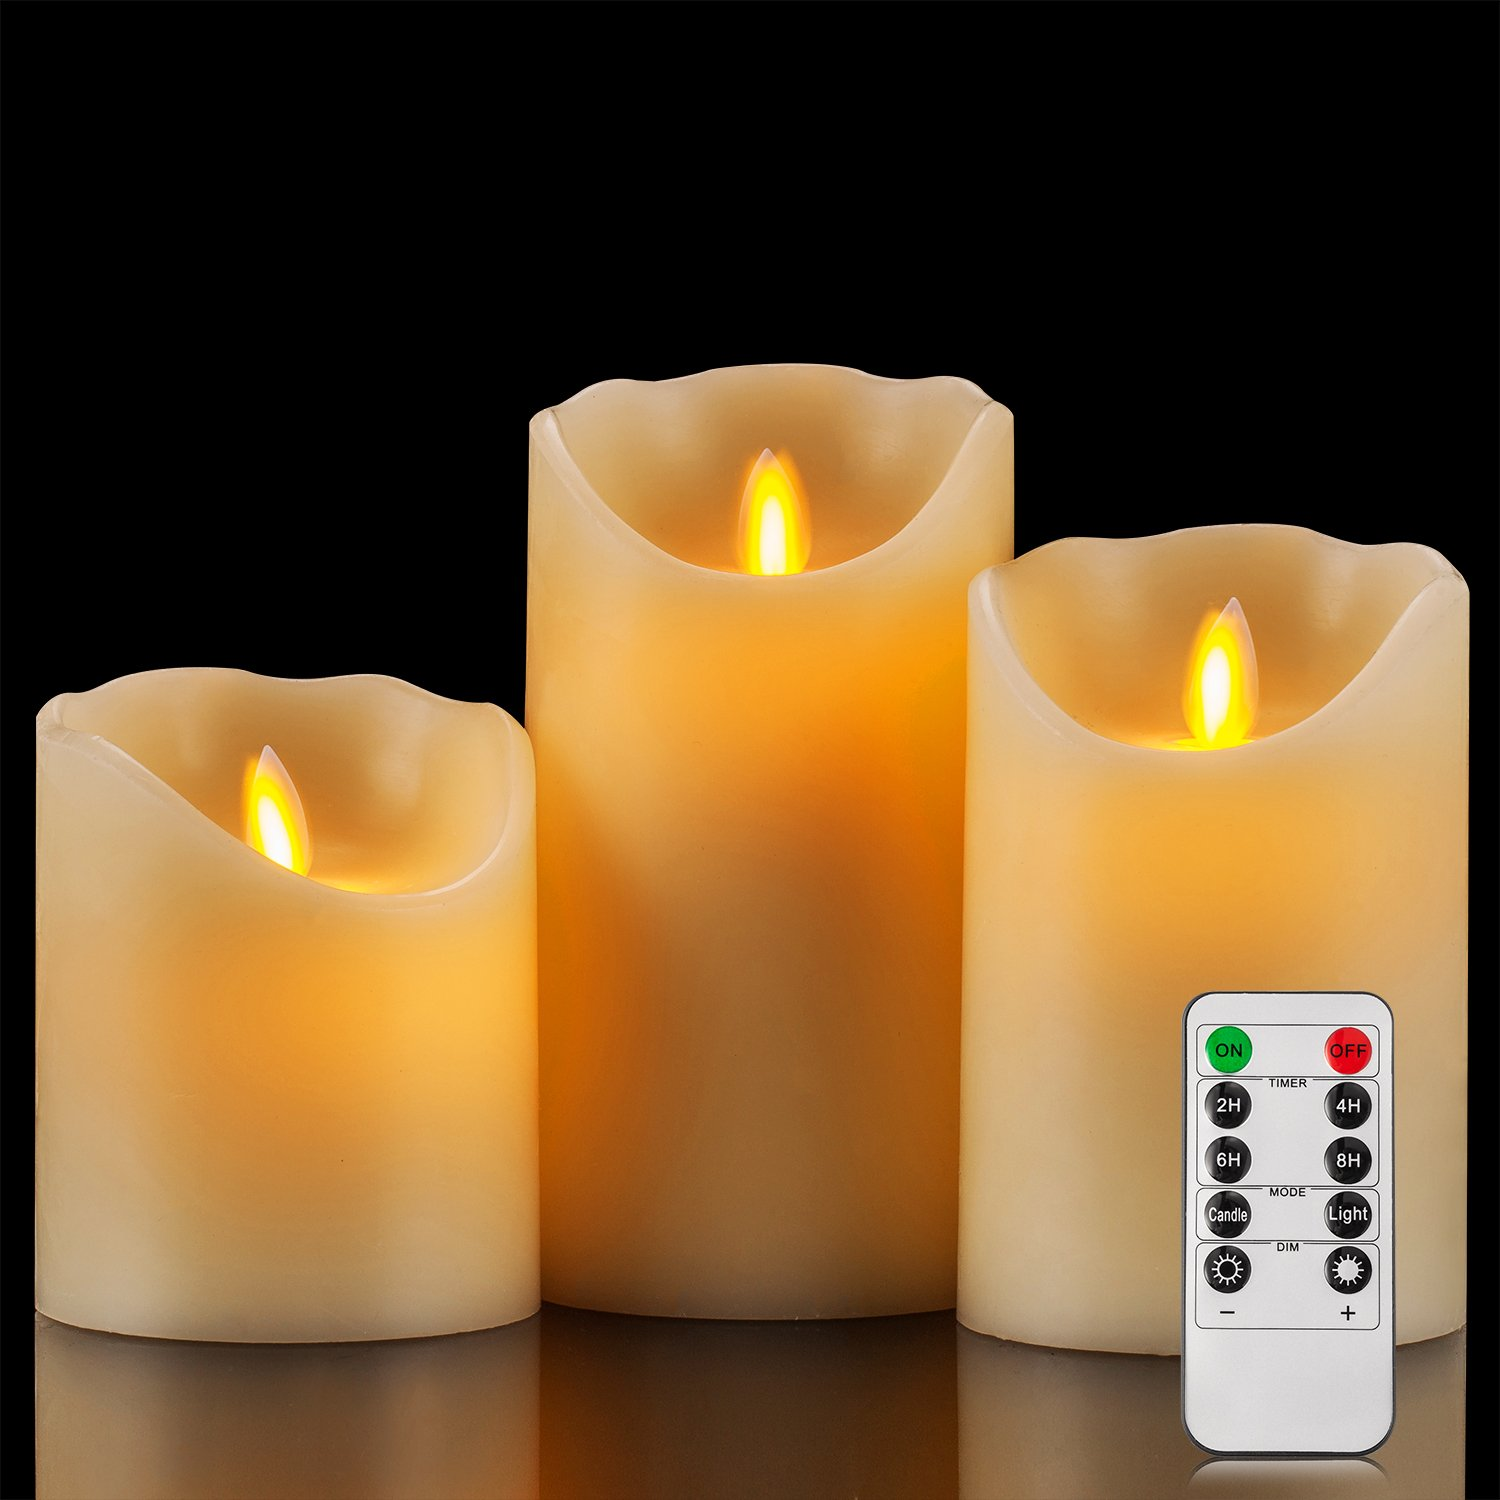 Enpornk Flameless Candles Battery Operated Candles Real Wax Pillar LED Candles with Dancing Flame with 10-key Remote and Cycling 24 Hours Timer, Height 4'' 5'' 6'', Ivory - Set of 3